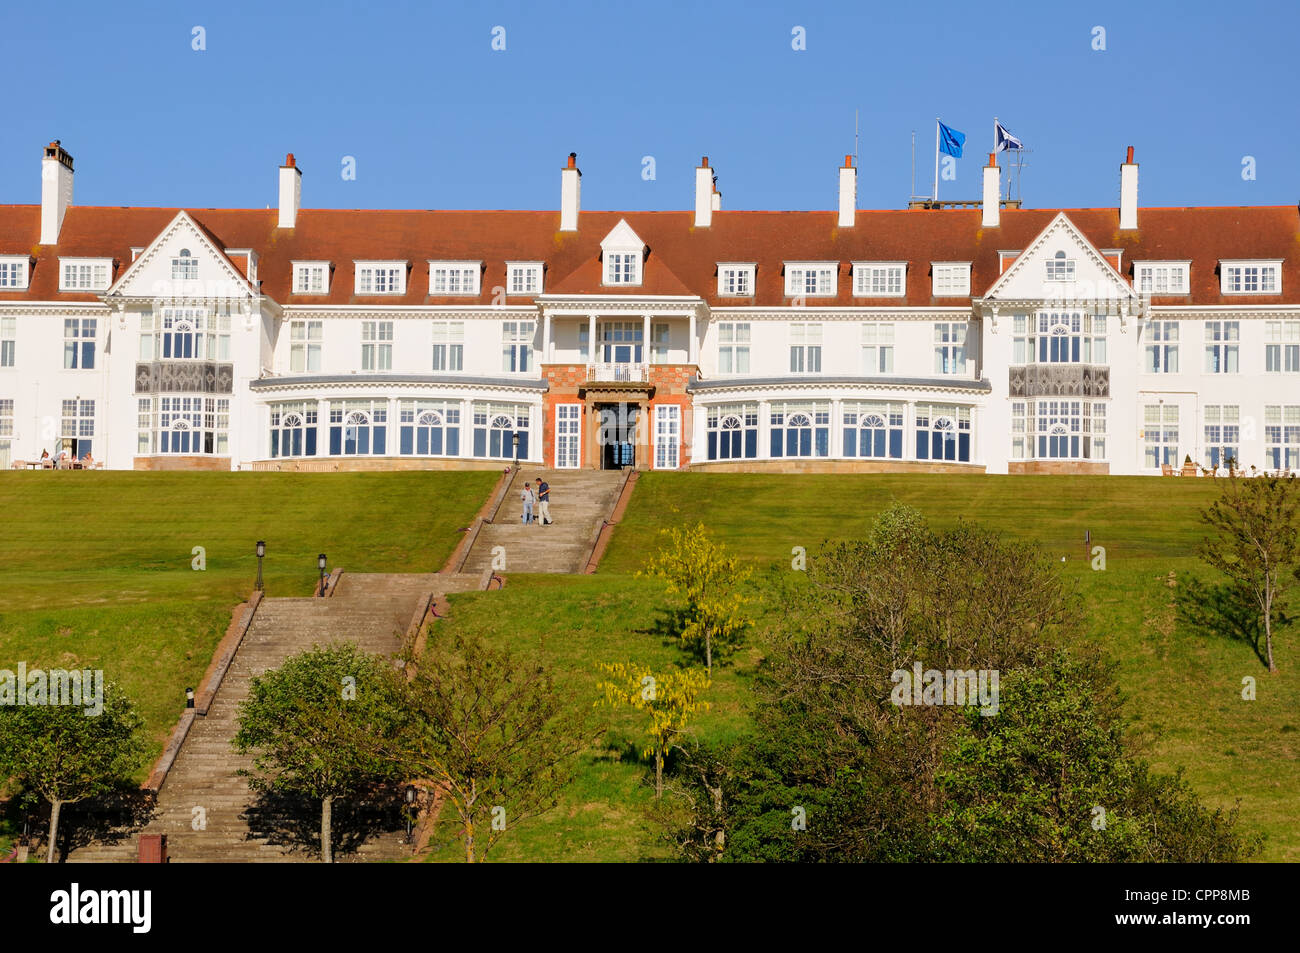 A Long flight of stairs leads up to the Turnberry Hotel entrance in Scotland, UK, Europe. - Stock Image